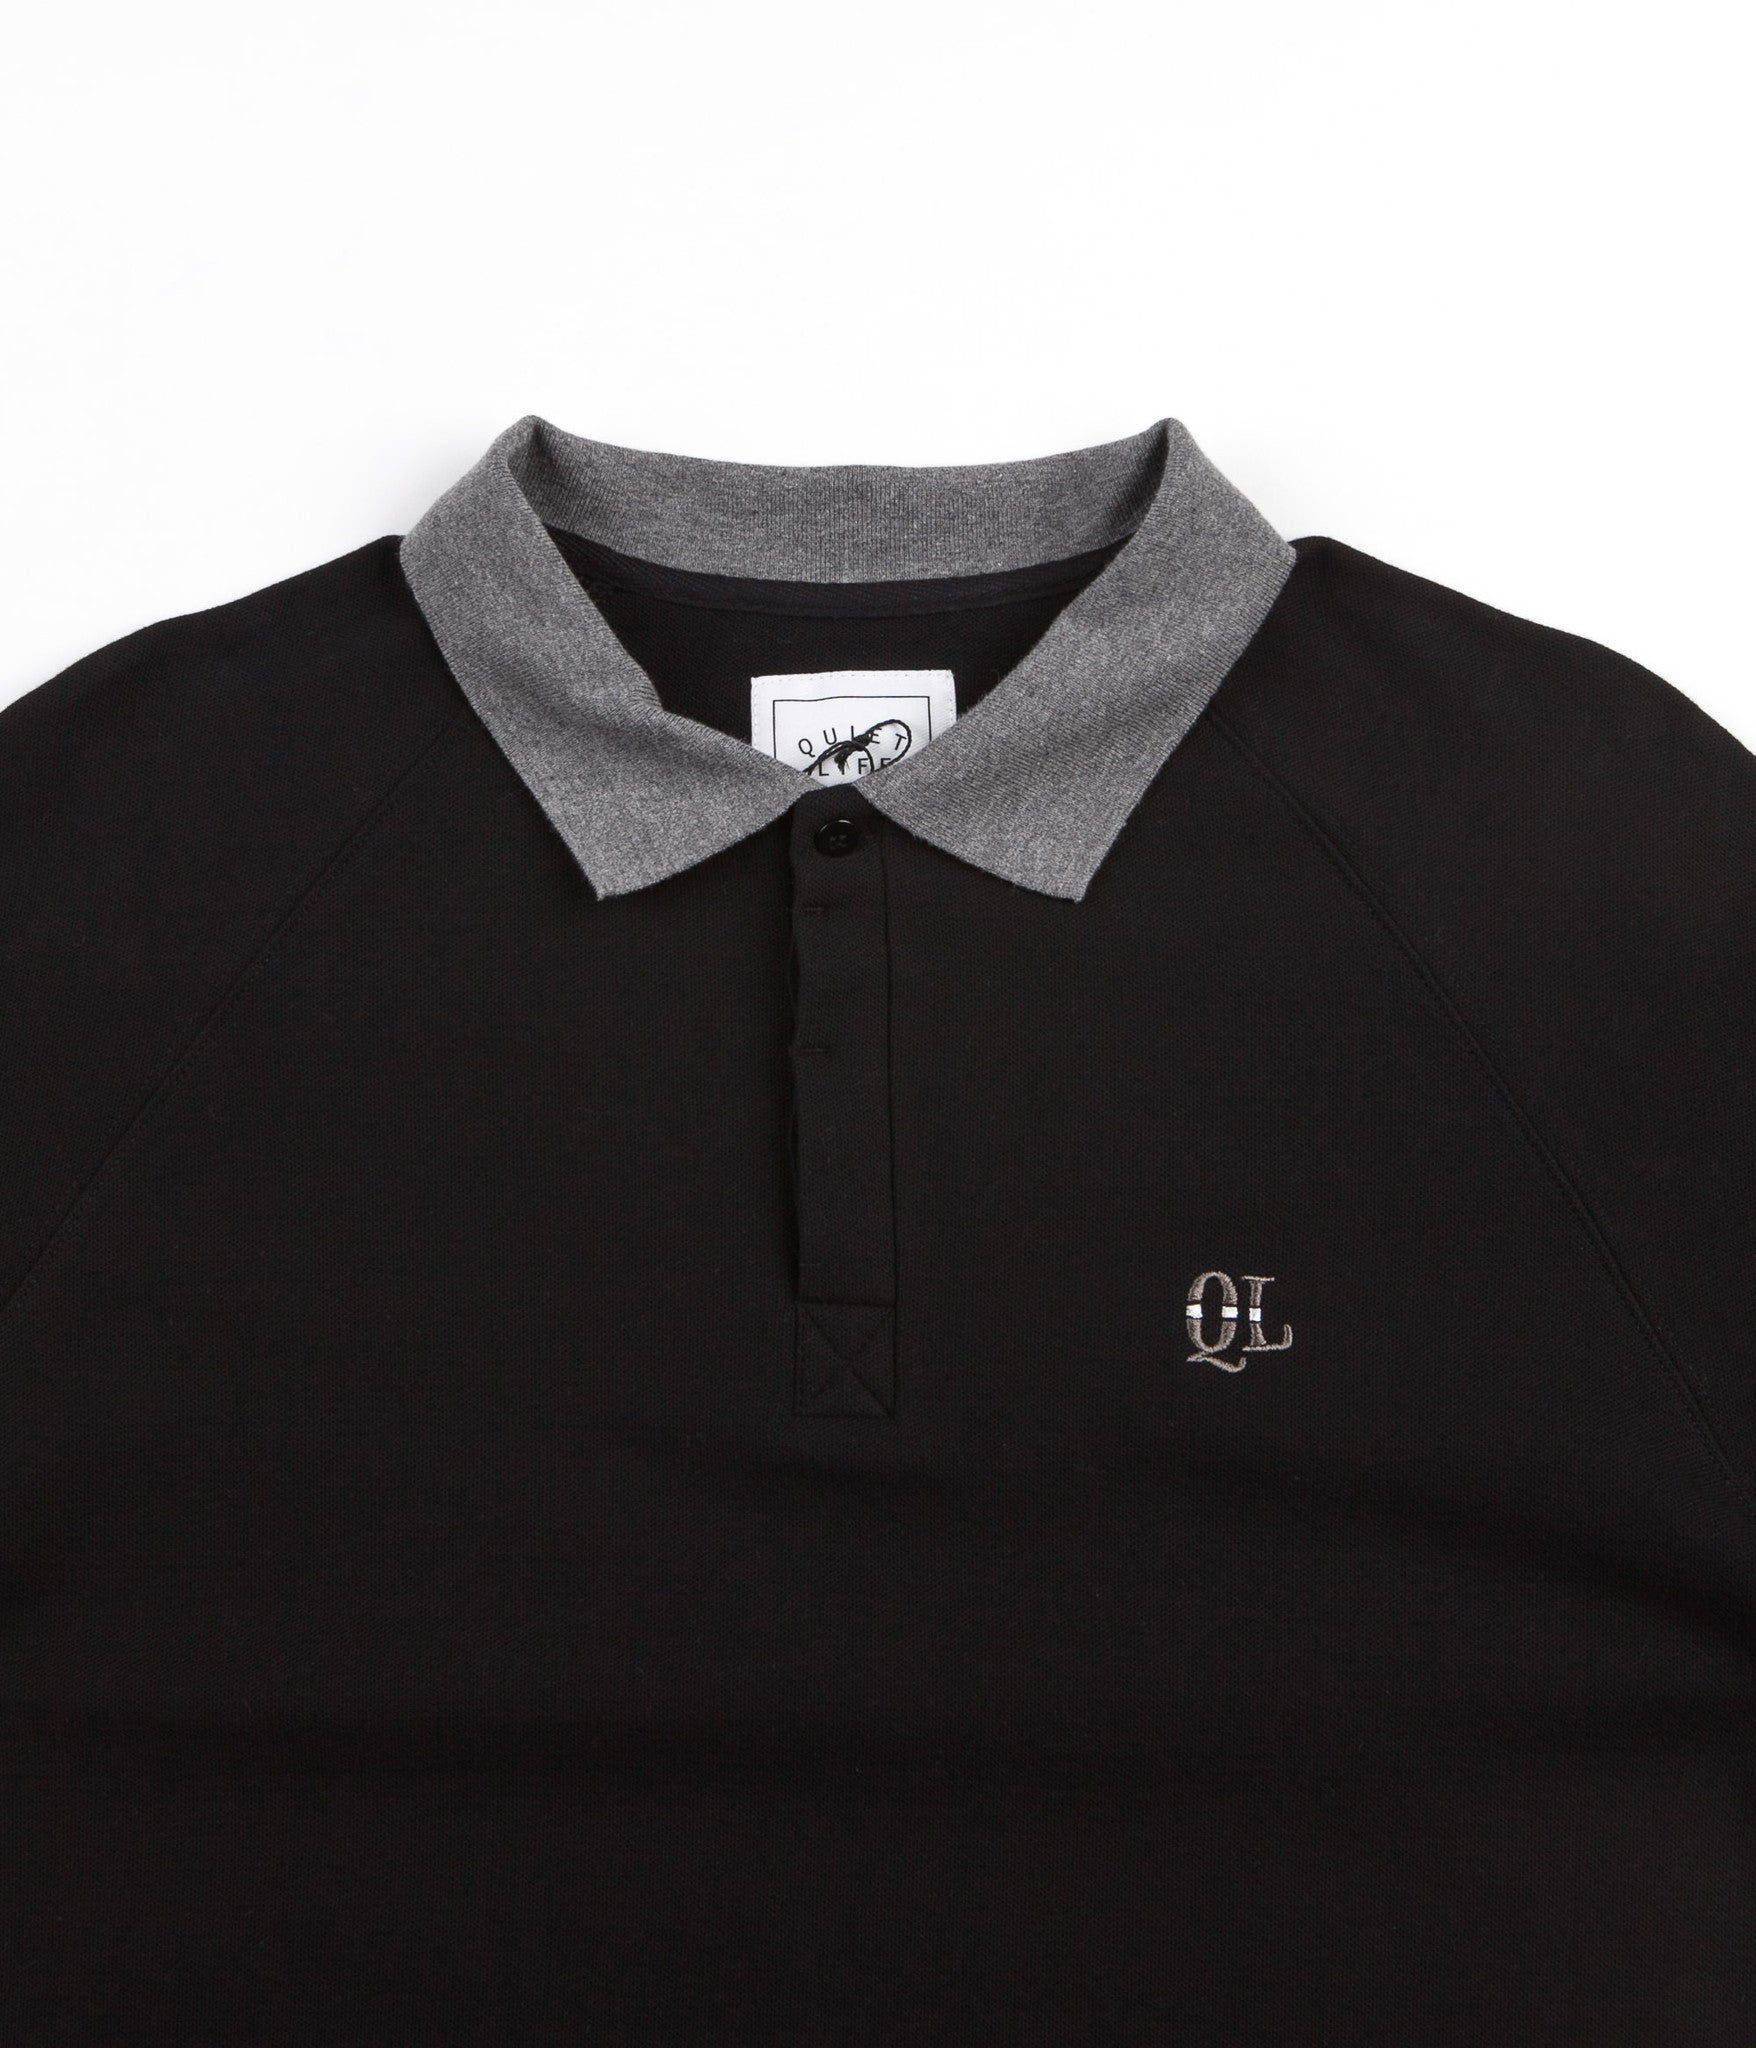 The Quiet Life Unchained Long Sleeve Rugby Shirt - Black